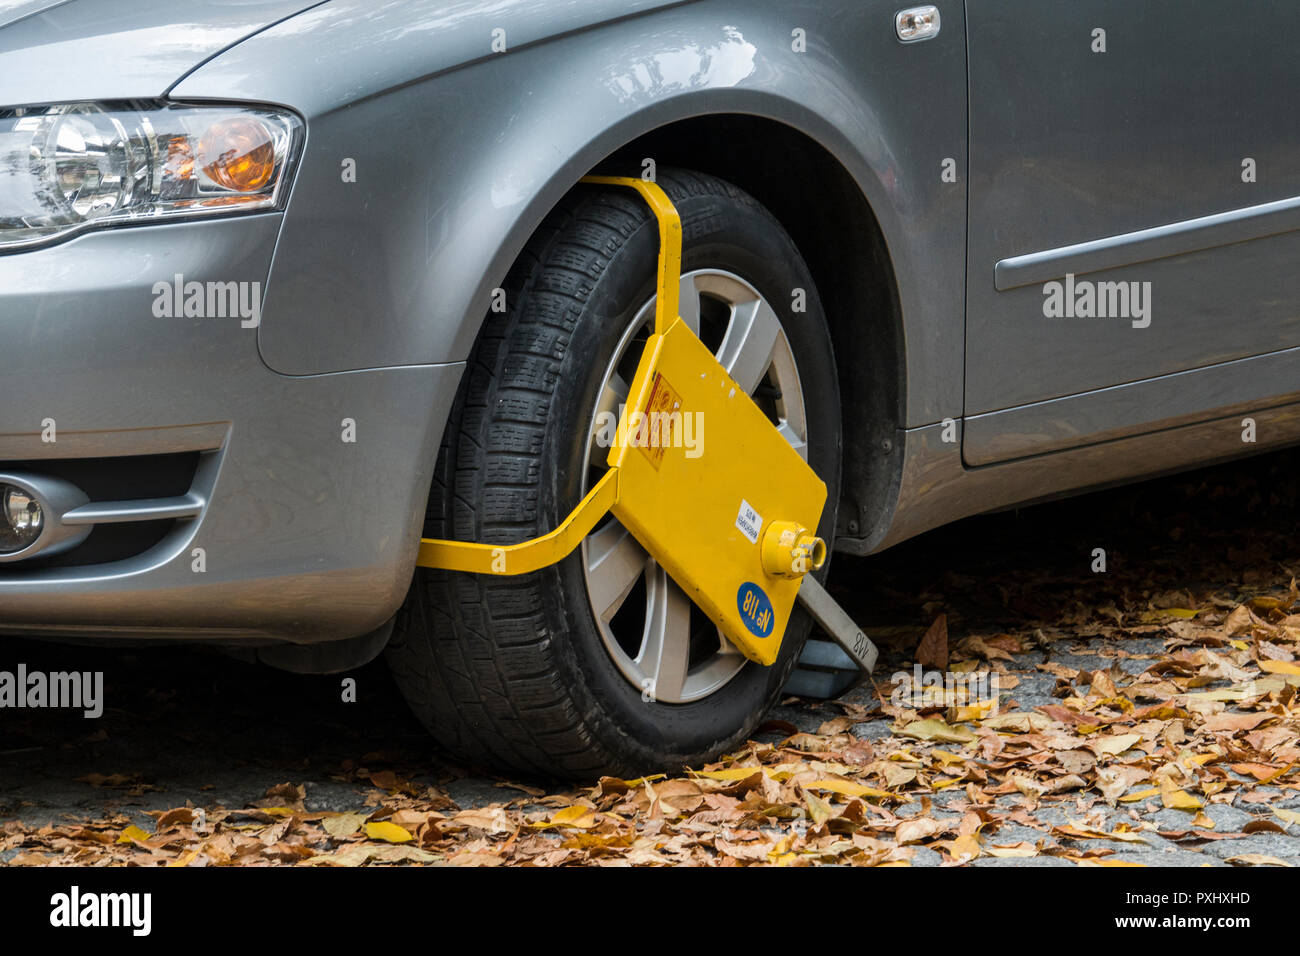 Yellow wheel clamp on parked car in Plovdiv, Bulgaria - Stock Image